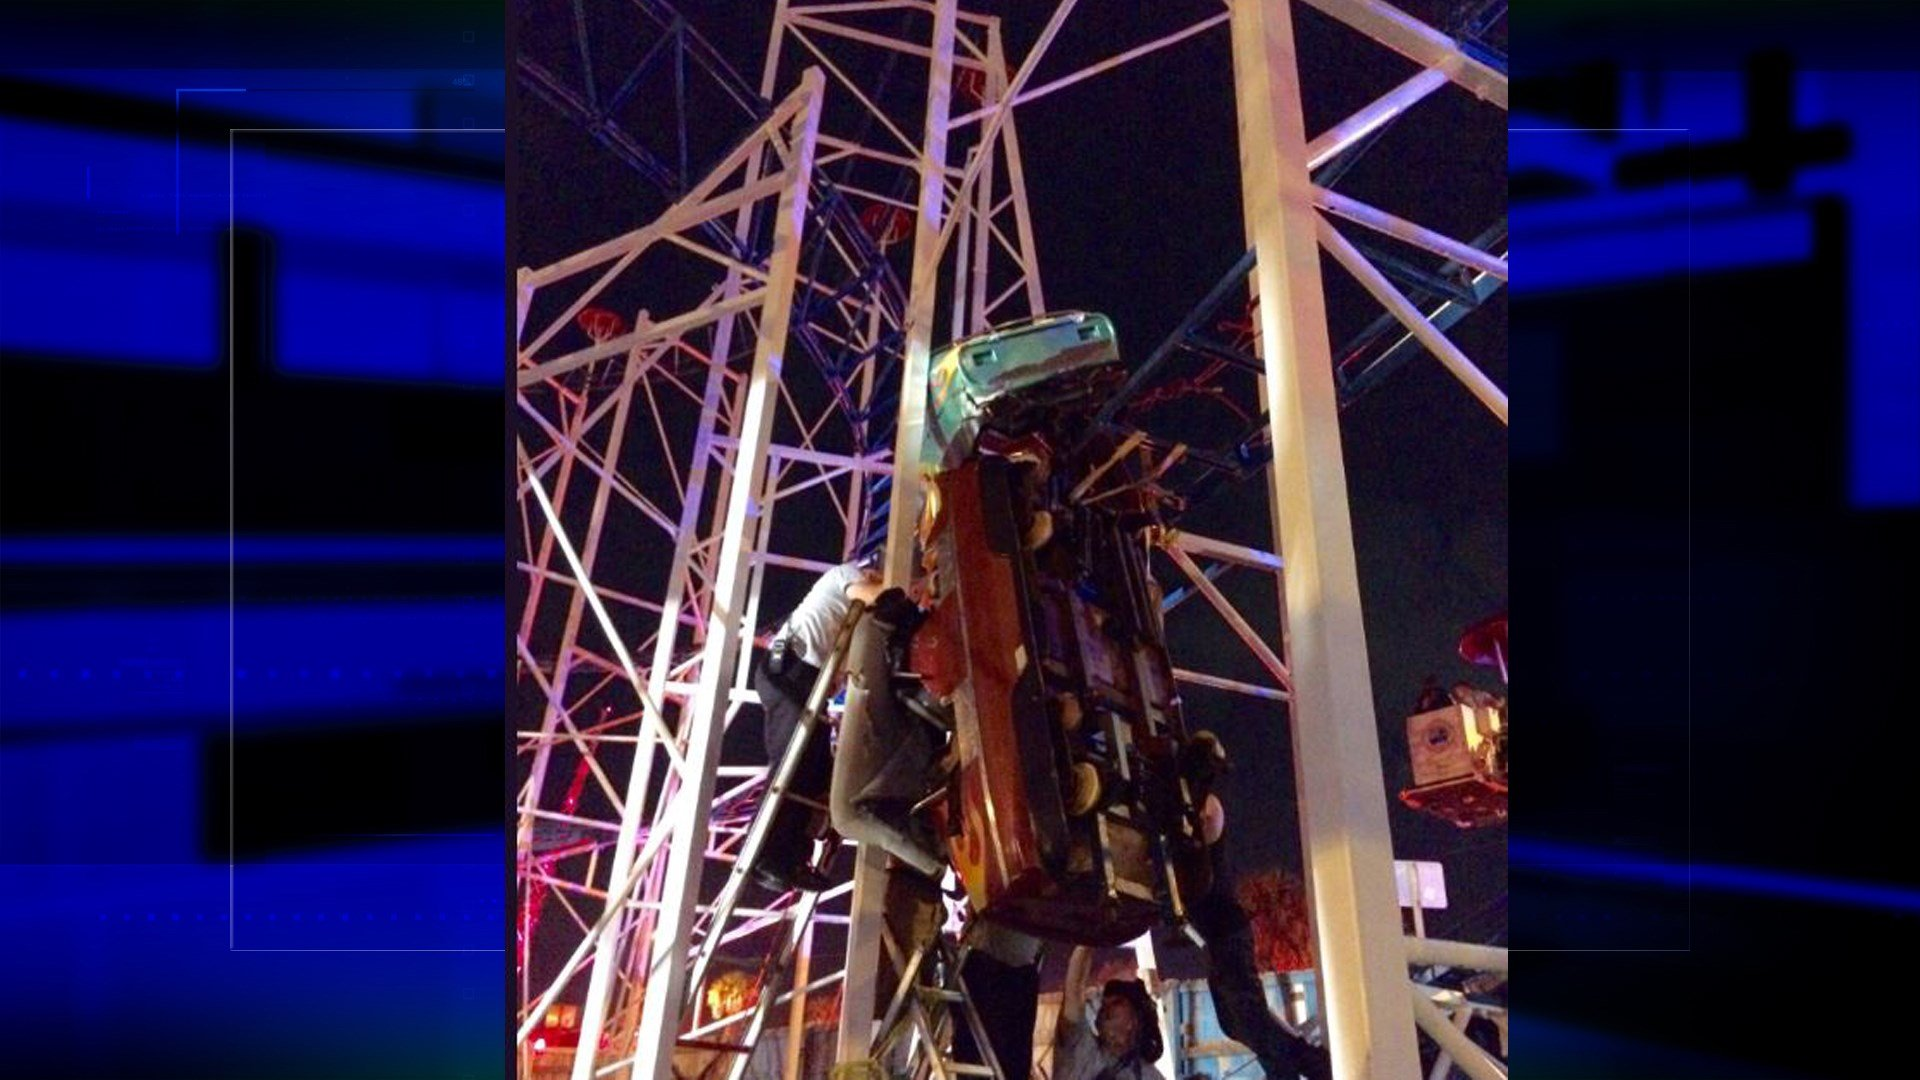 Firefighters in Daytona rescue roller coaster riders